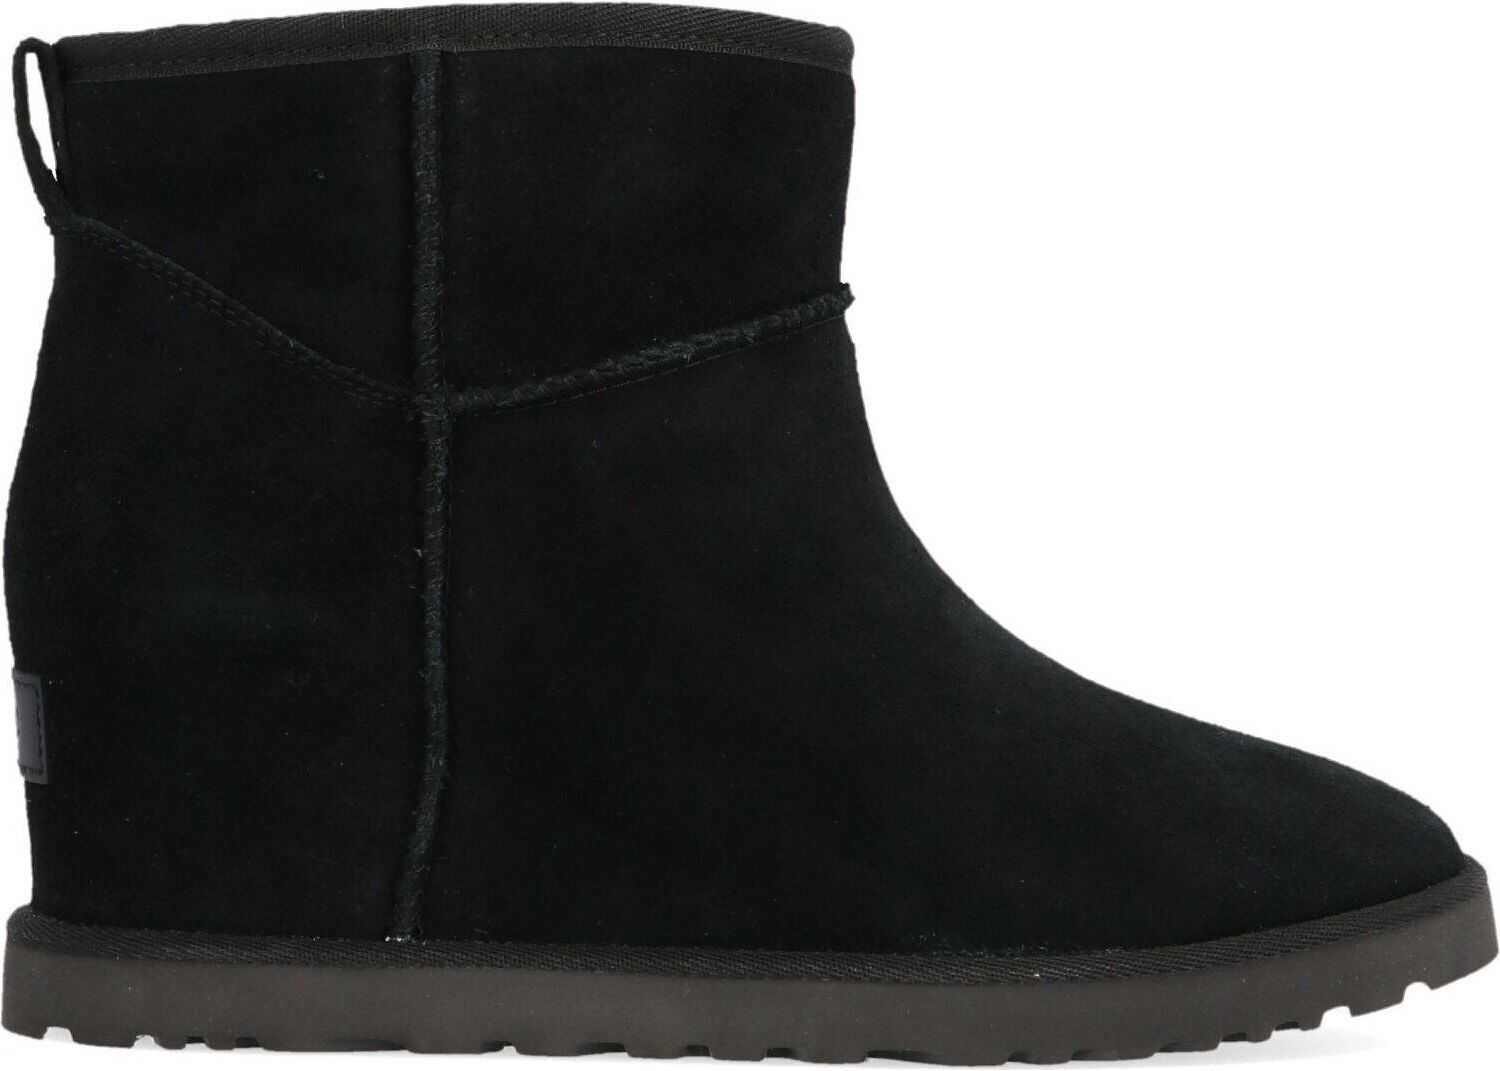 UGG Suede Ankle Boots BLACK